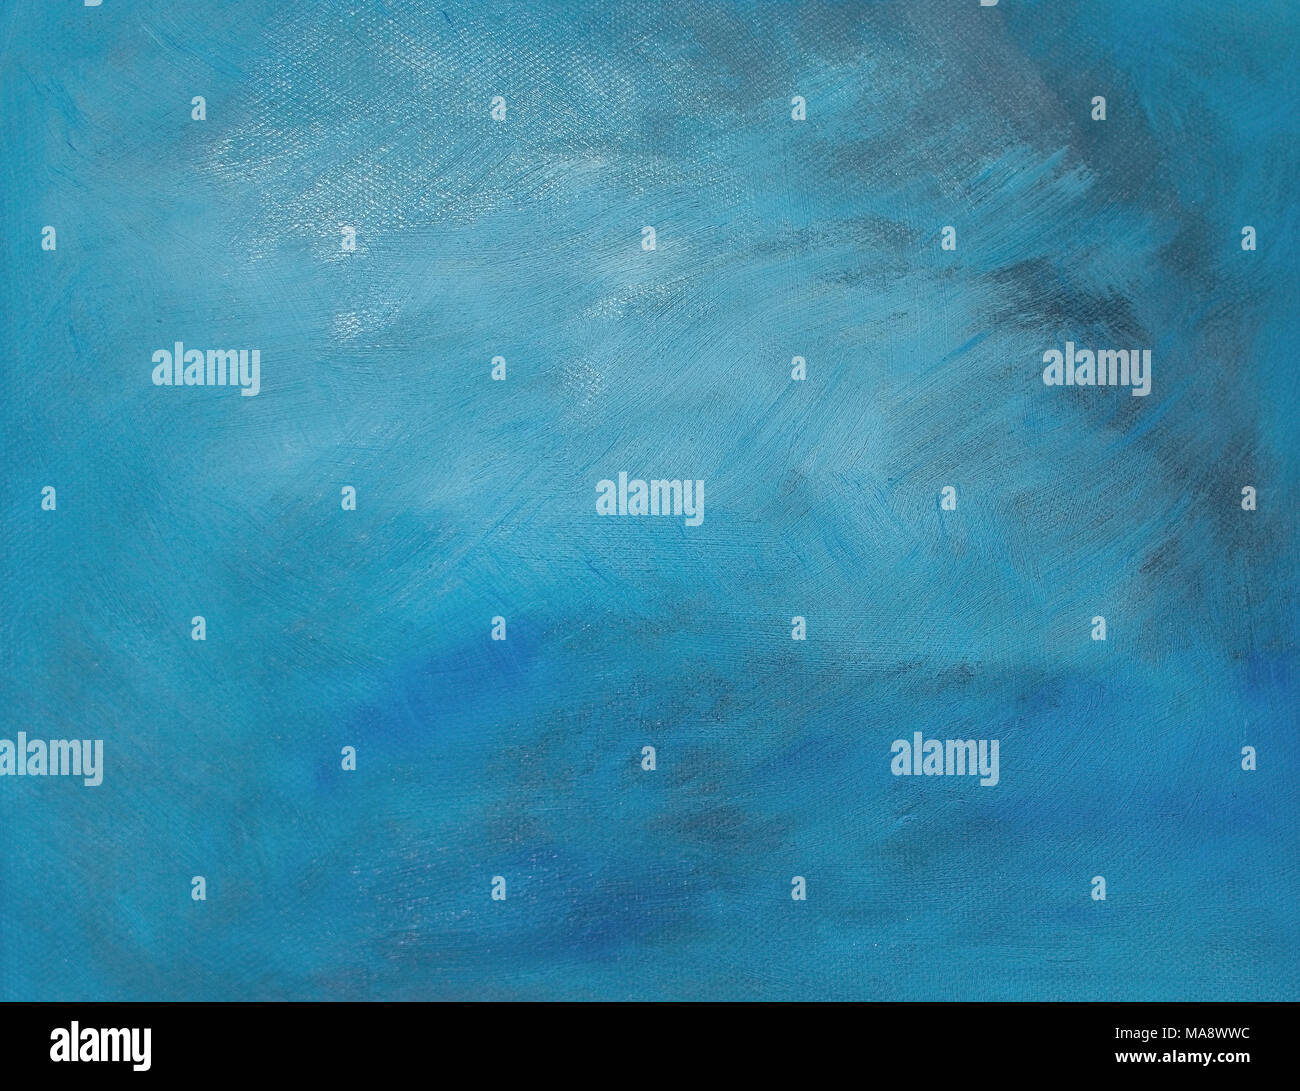 Turquoise oil painting canvas background copy space texture - Stock Image